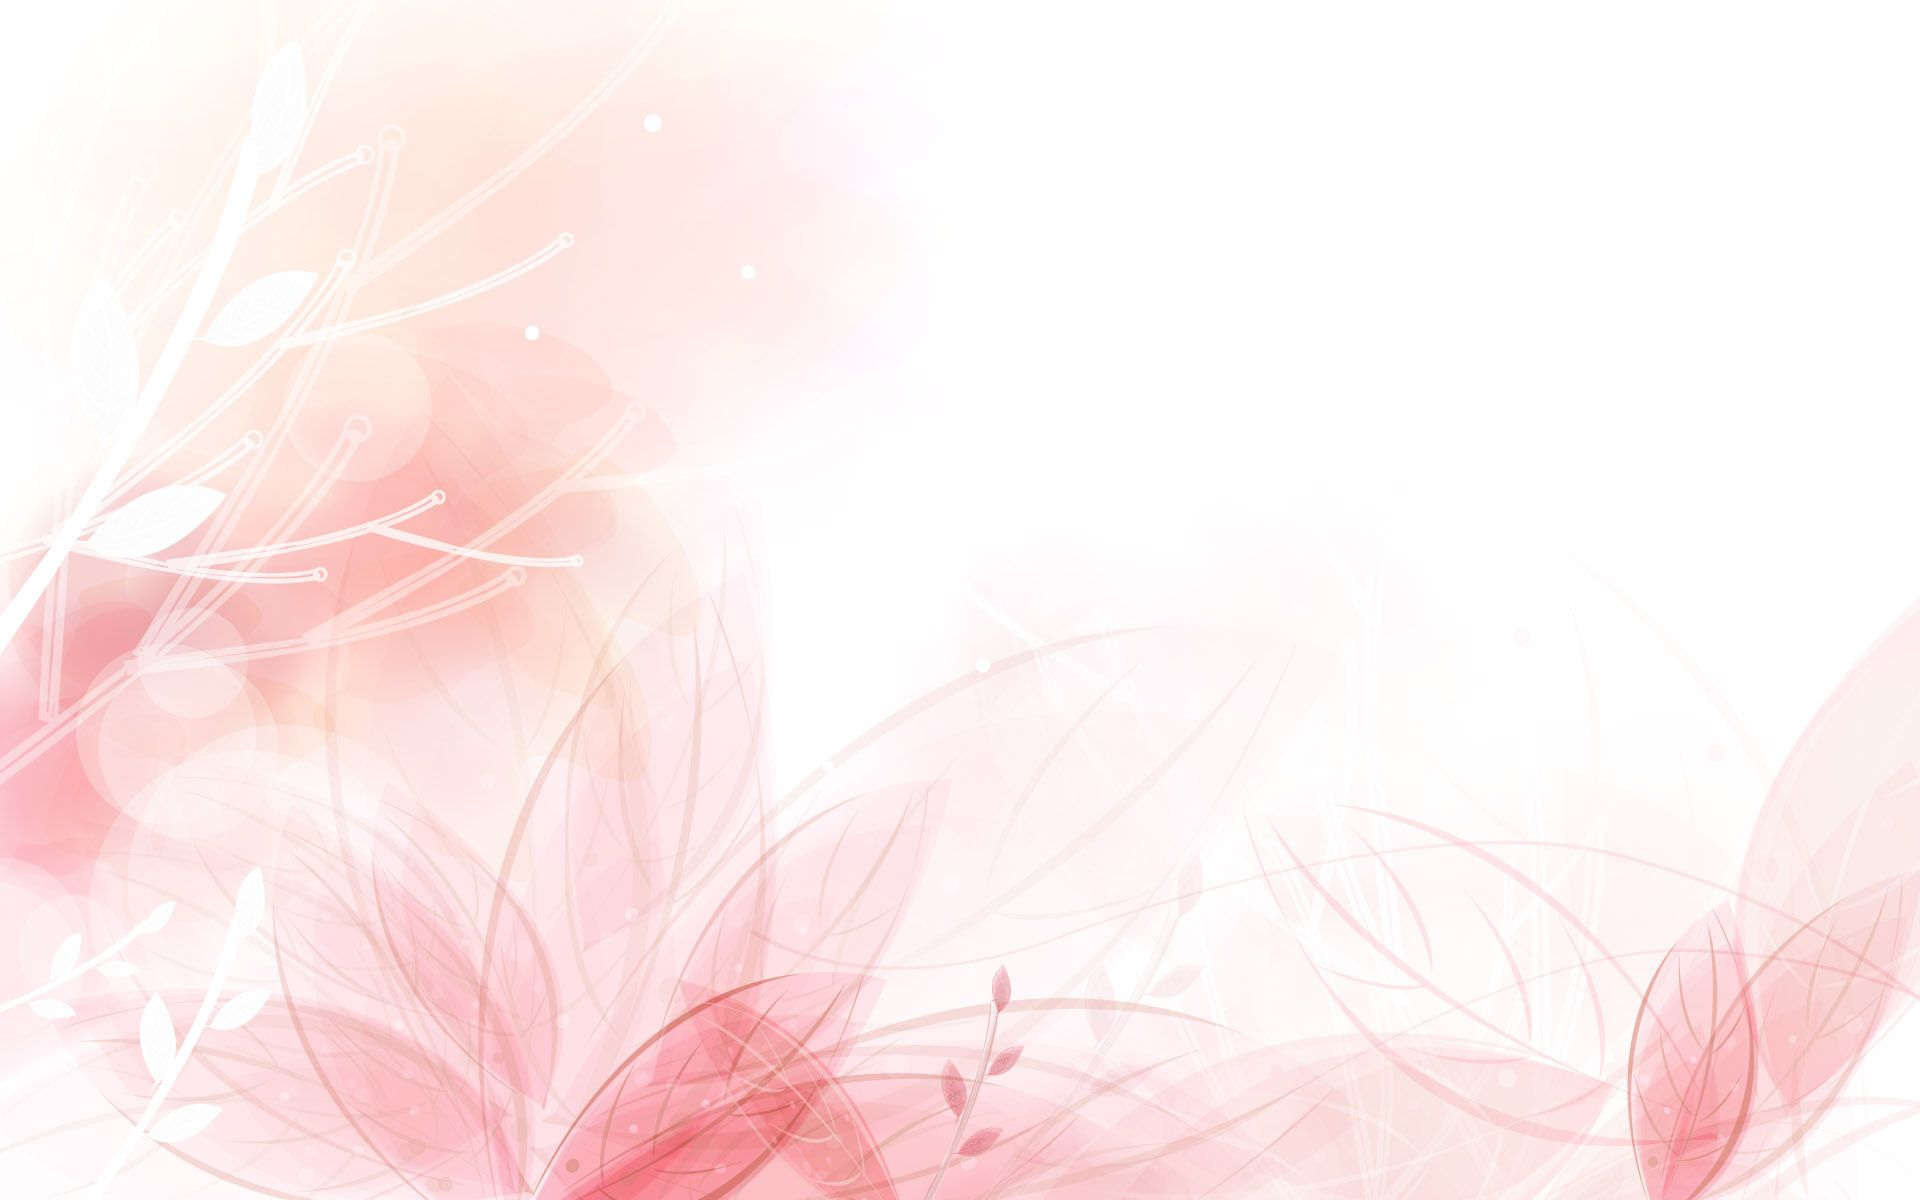 Small Pink Flowers Background Pictures -free